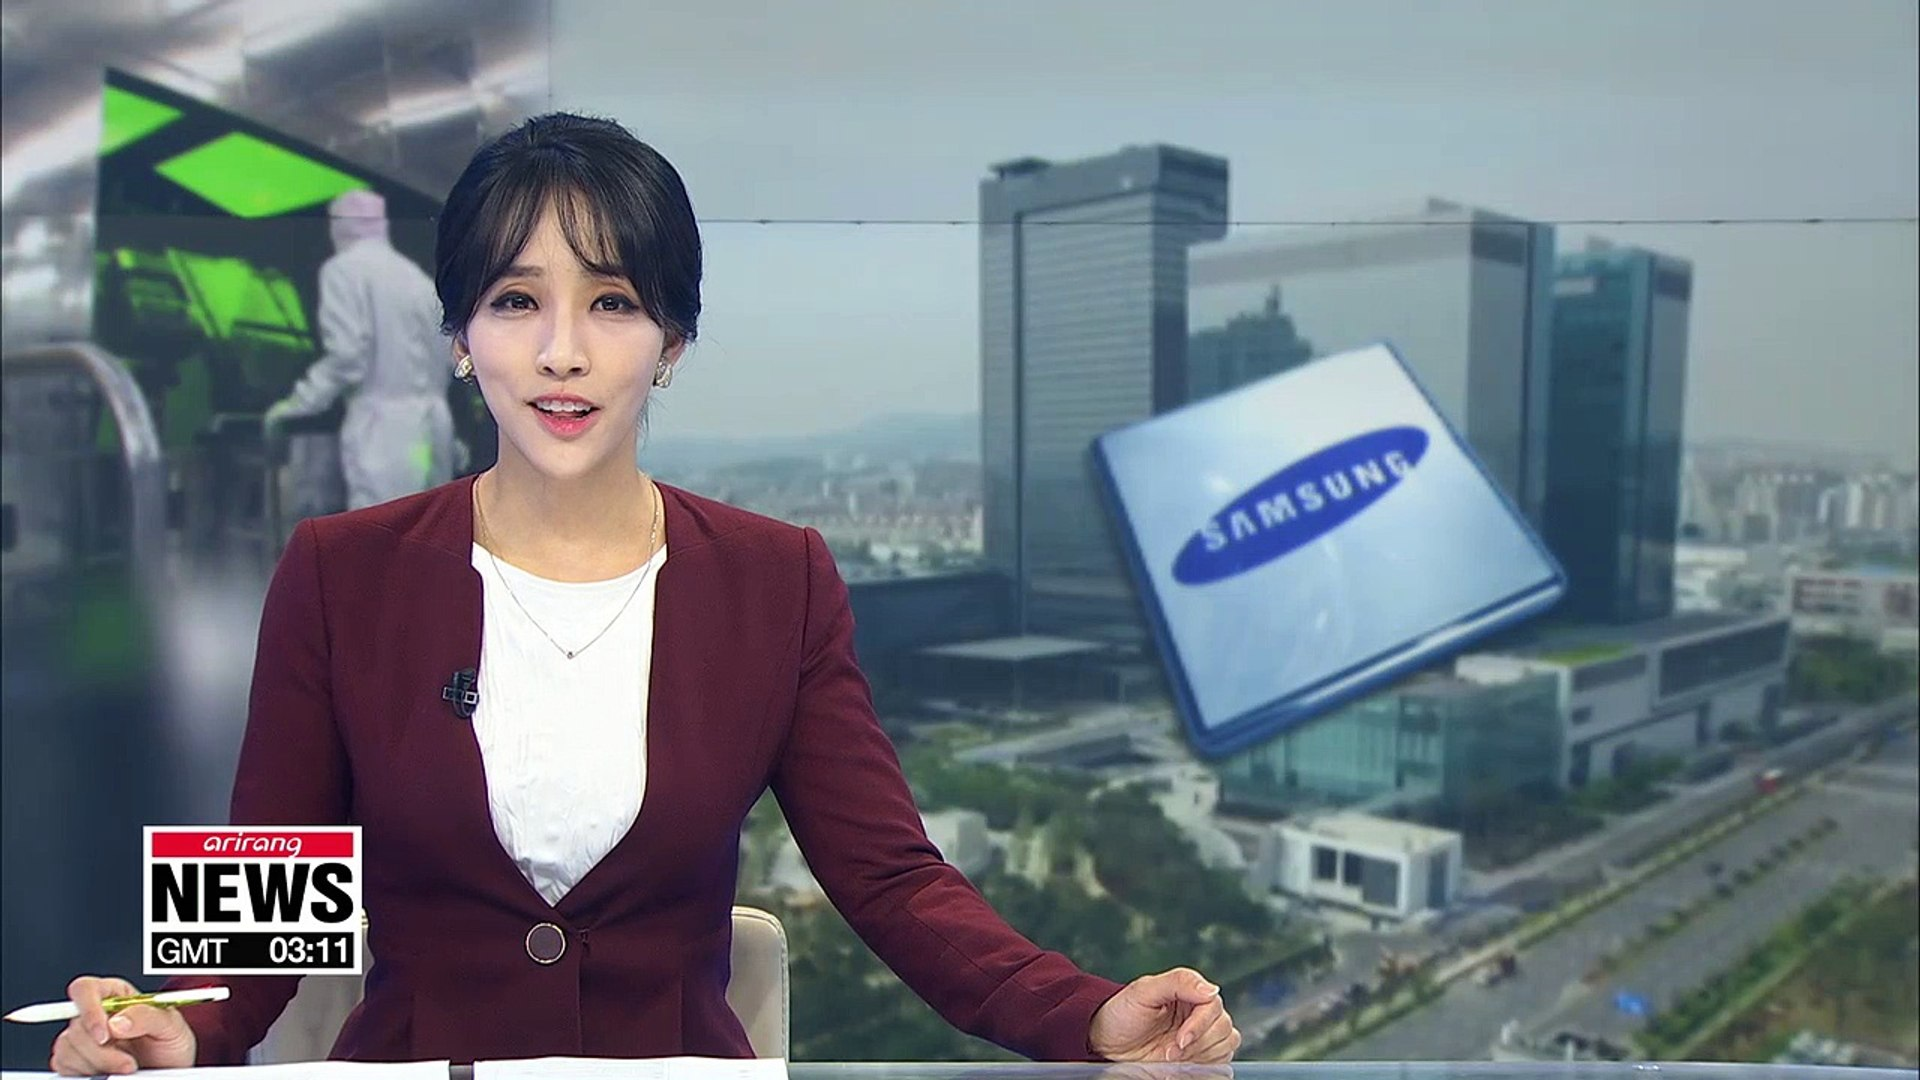 Samsung Electronics makes a new profit record of more than 15 billion dollars for the 3rd quarter